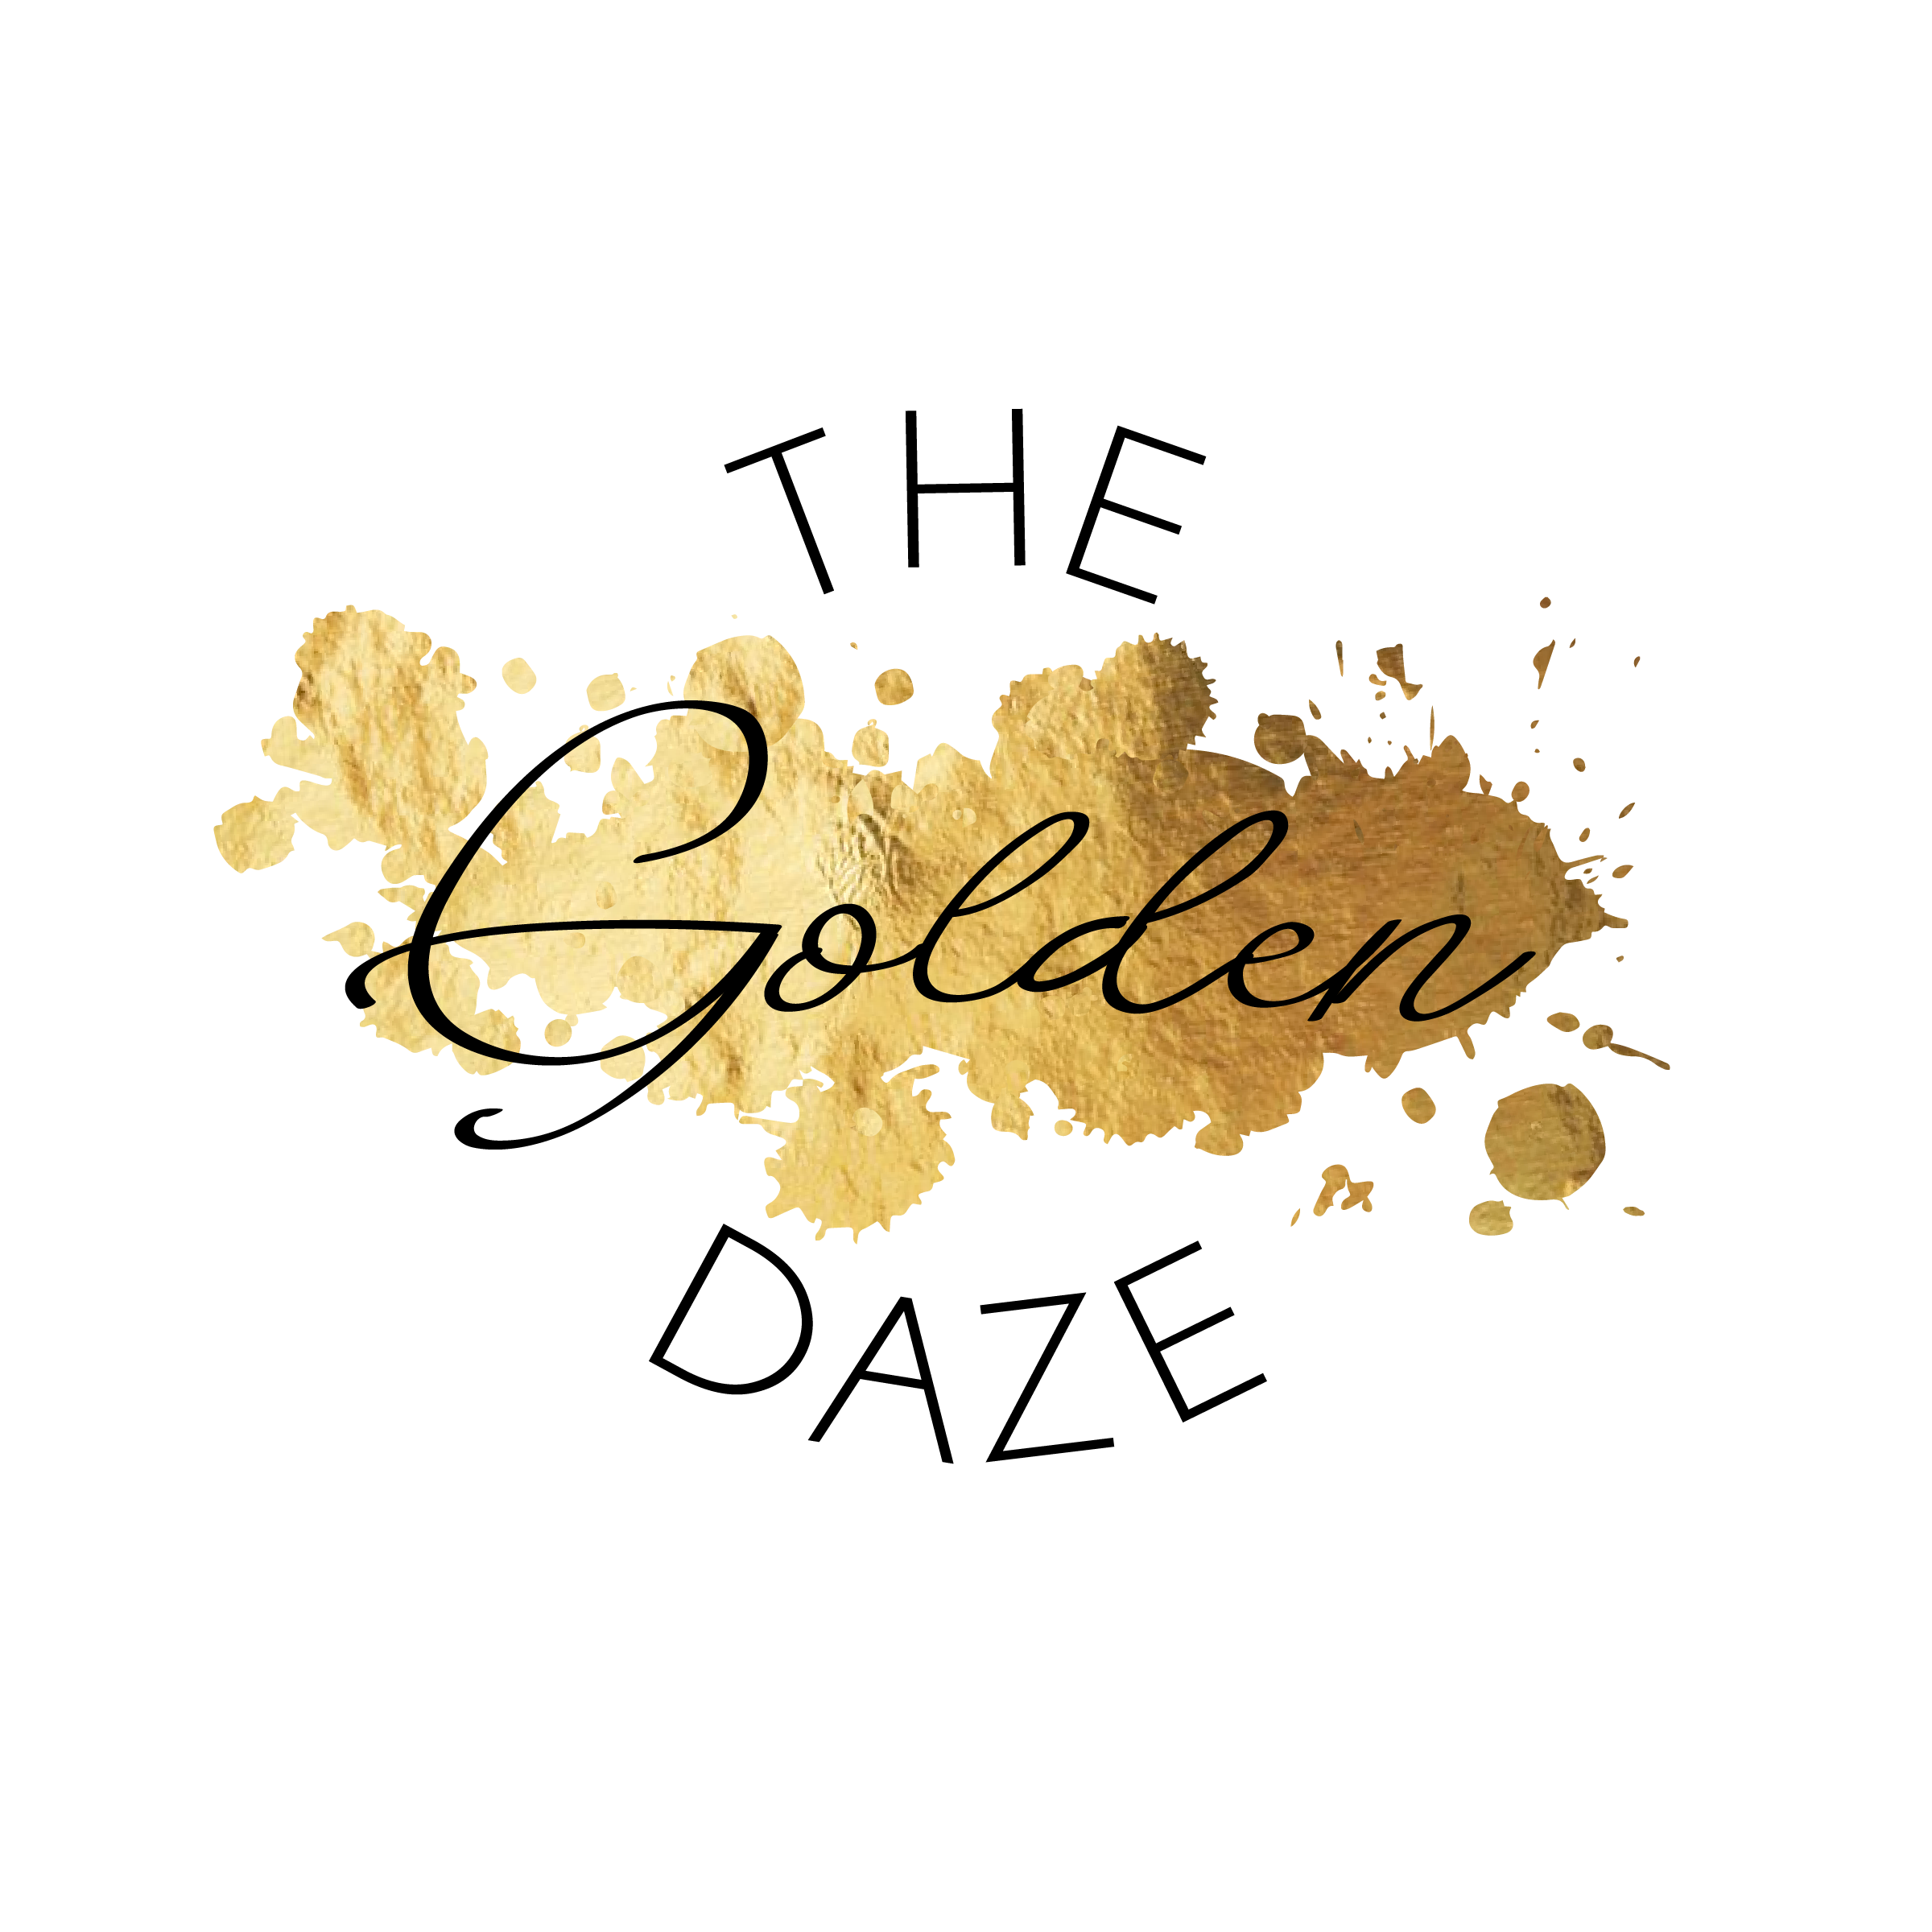 The Golden Daze